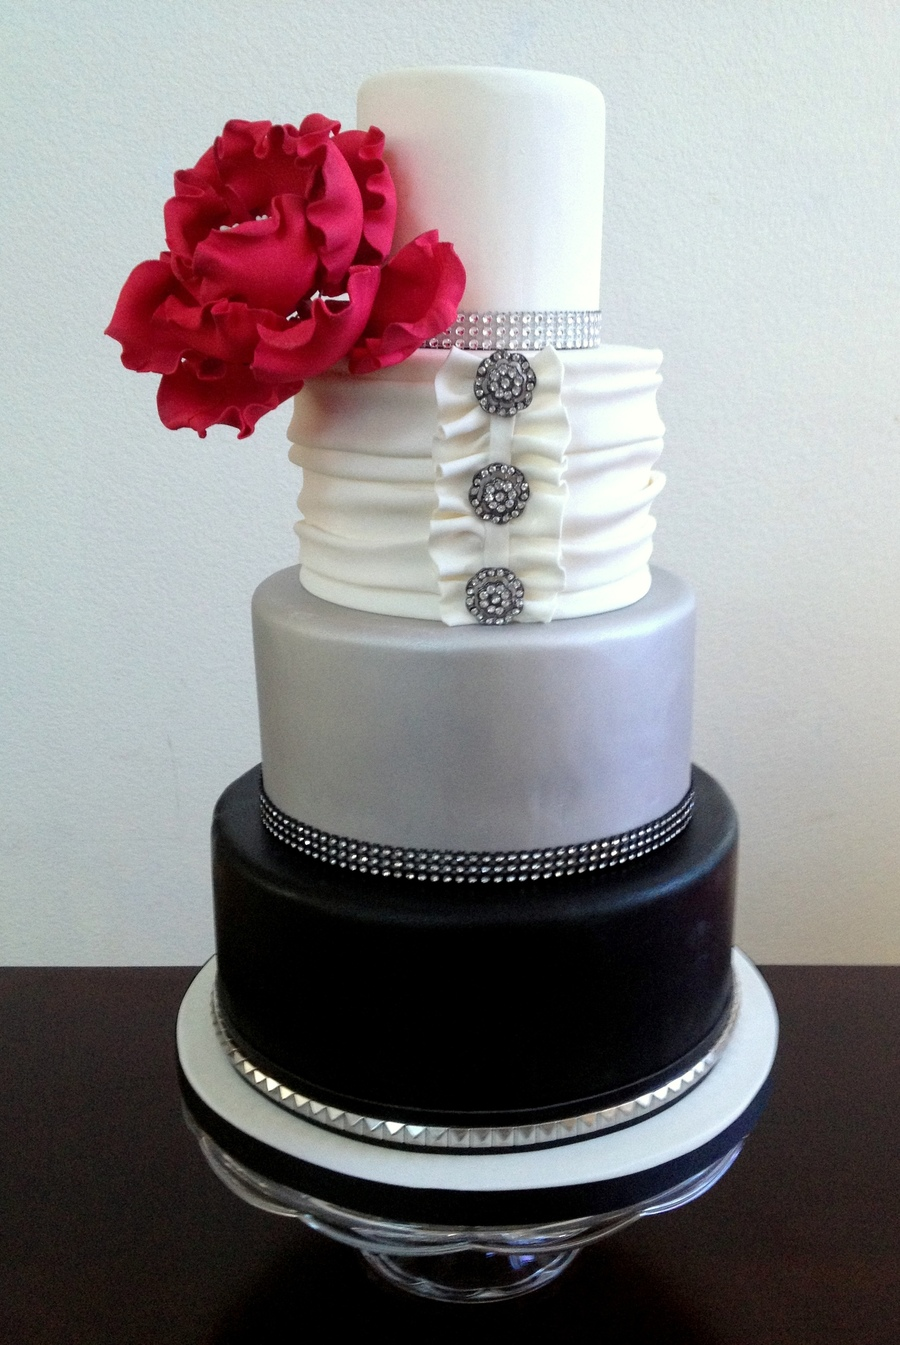 Fondant Wedding Cake Bottom Tier Is Airbrushed Black With A Faux ...